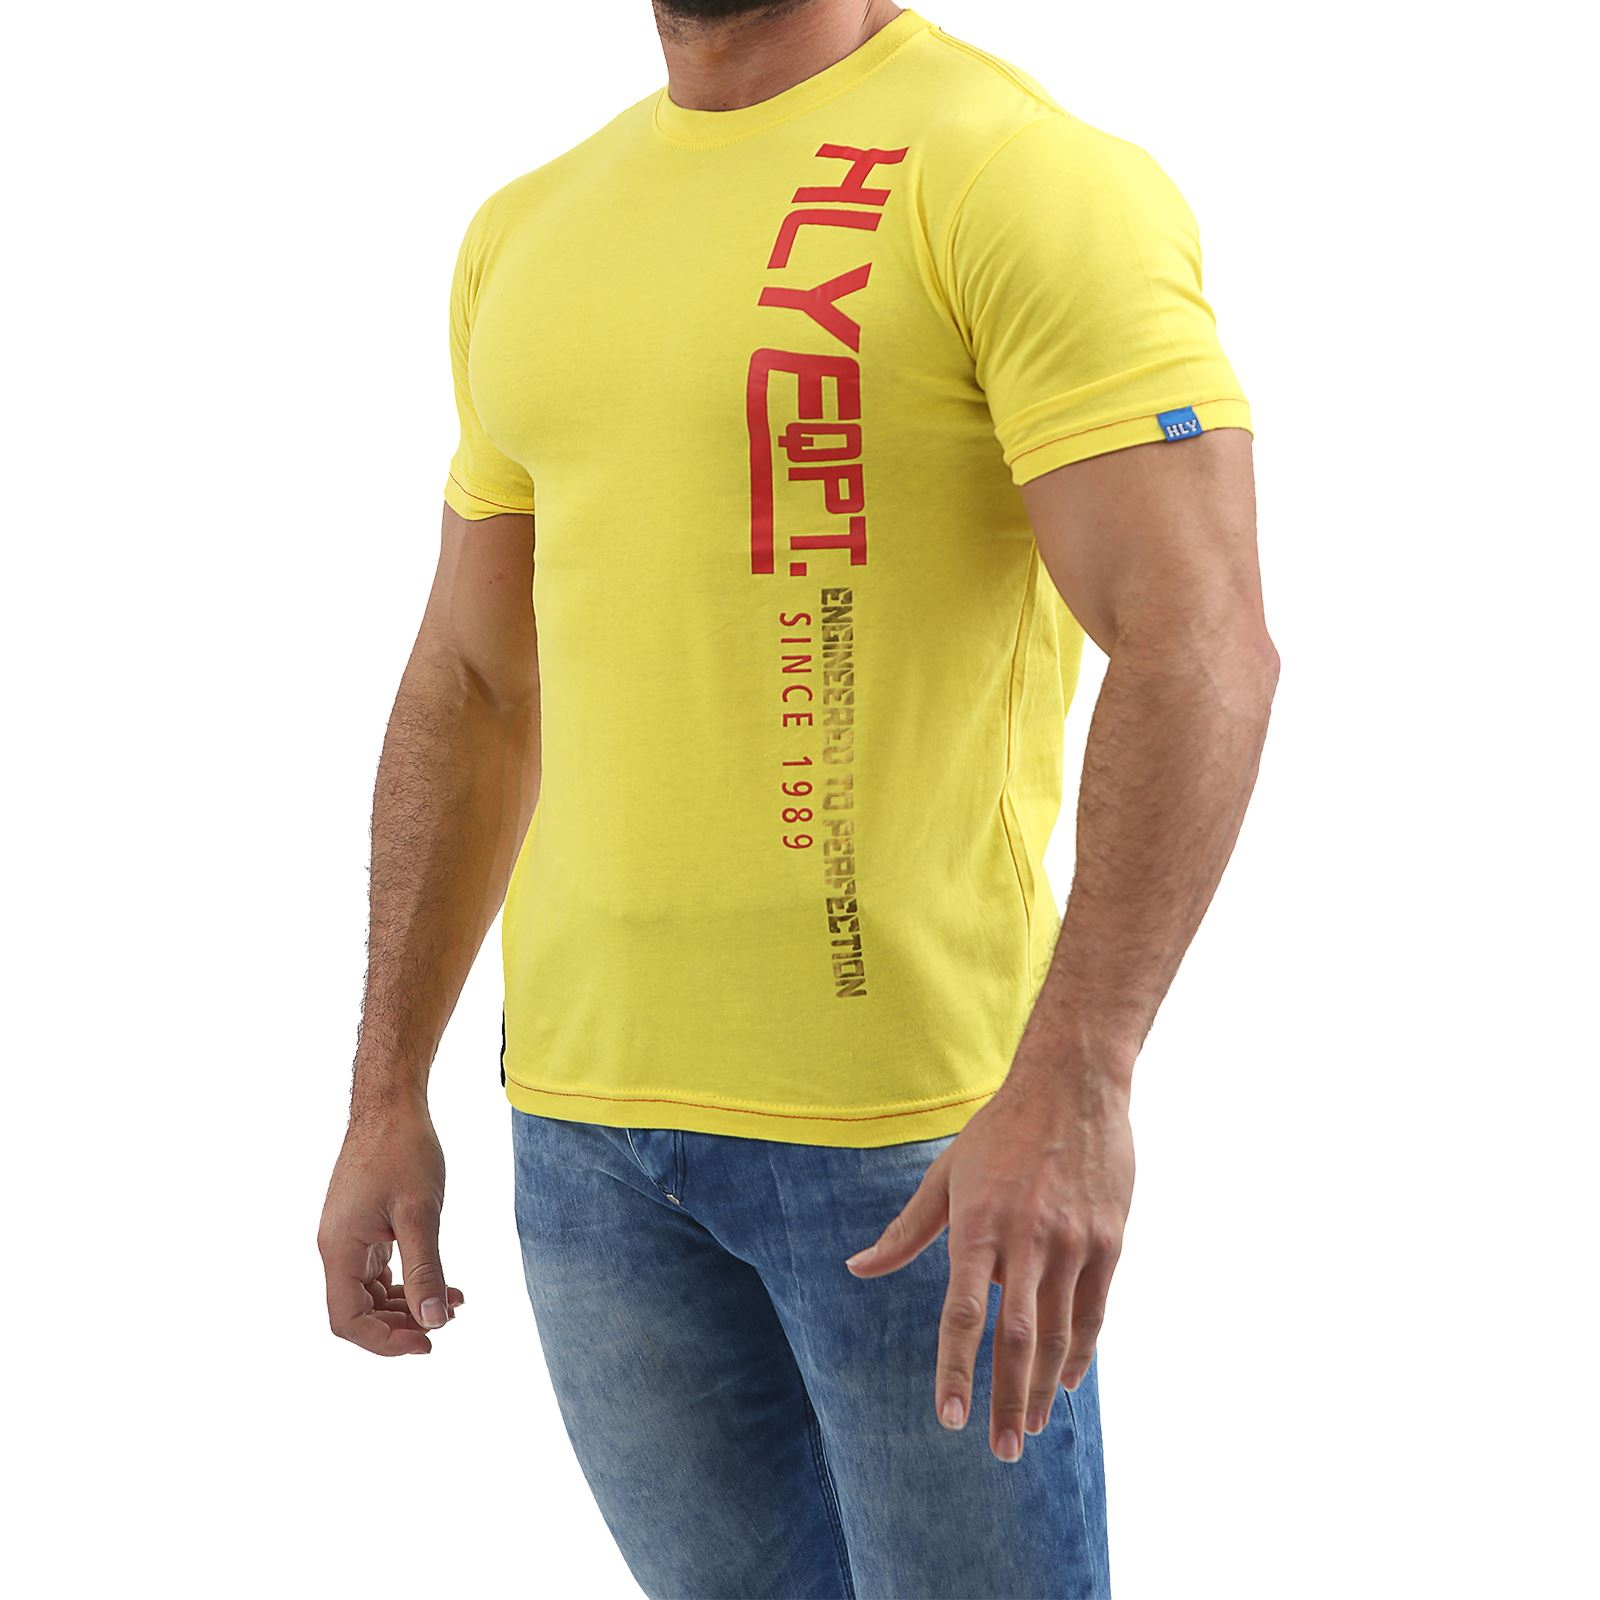 Mens-HLY-Printed-T-Shirt-100-Cotton-Gym-Athletic-Training-Tee-Top-Summer-New thumbnail 19